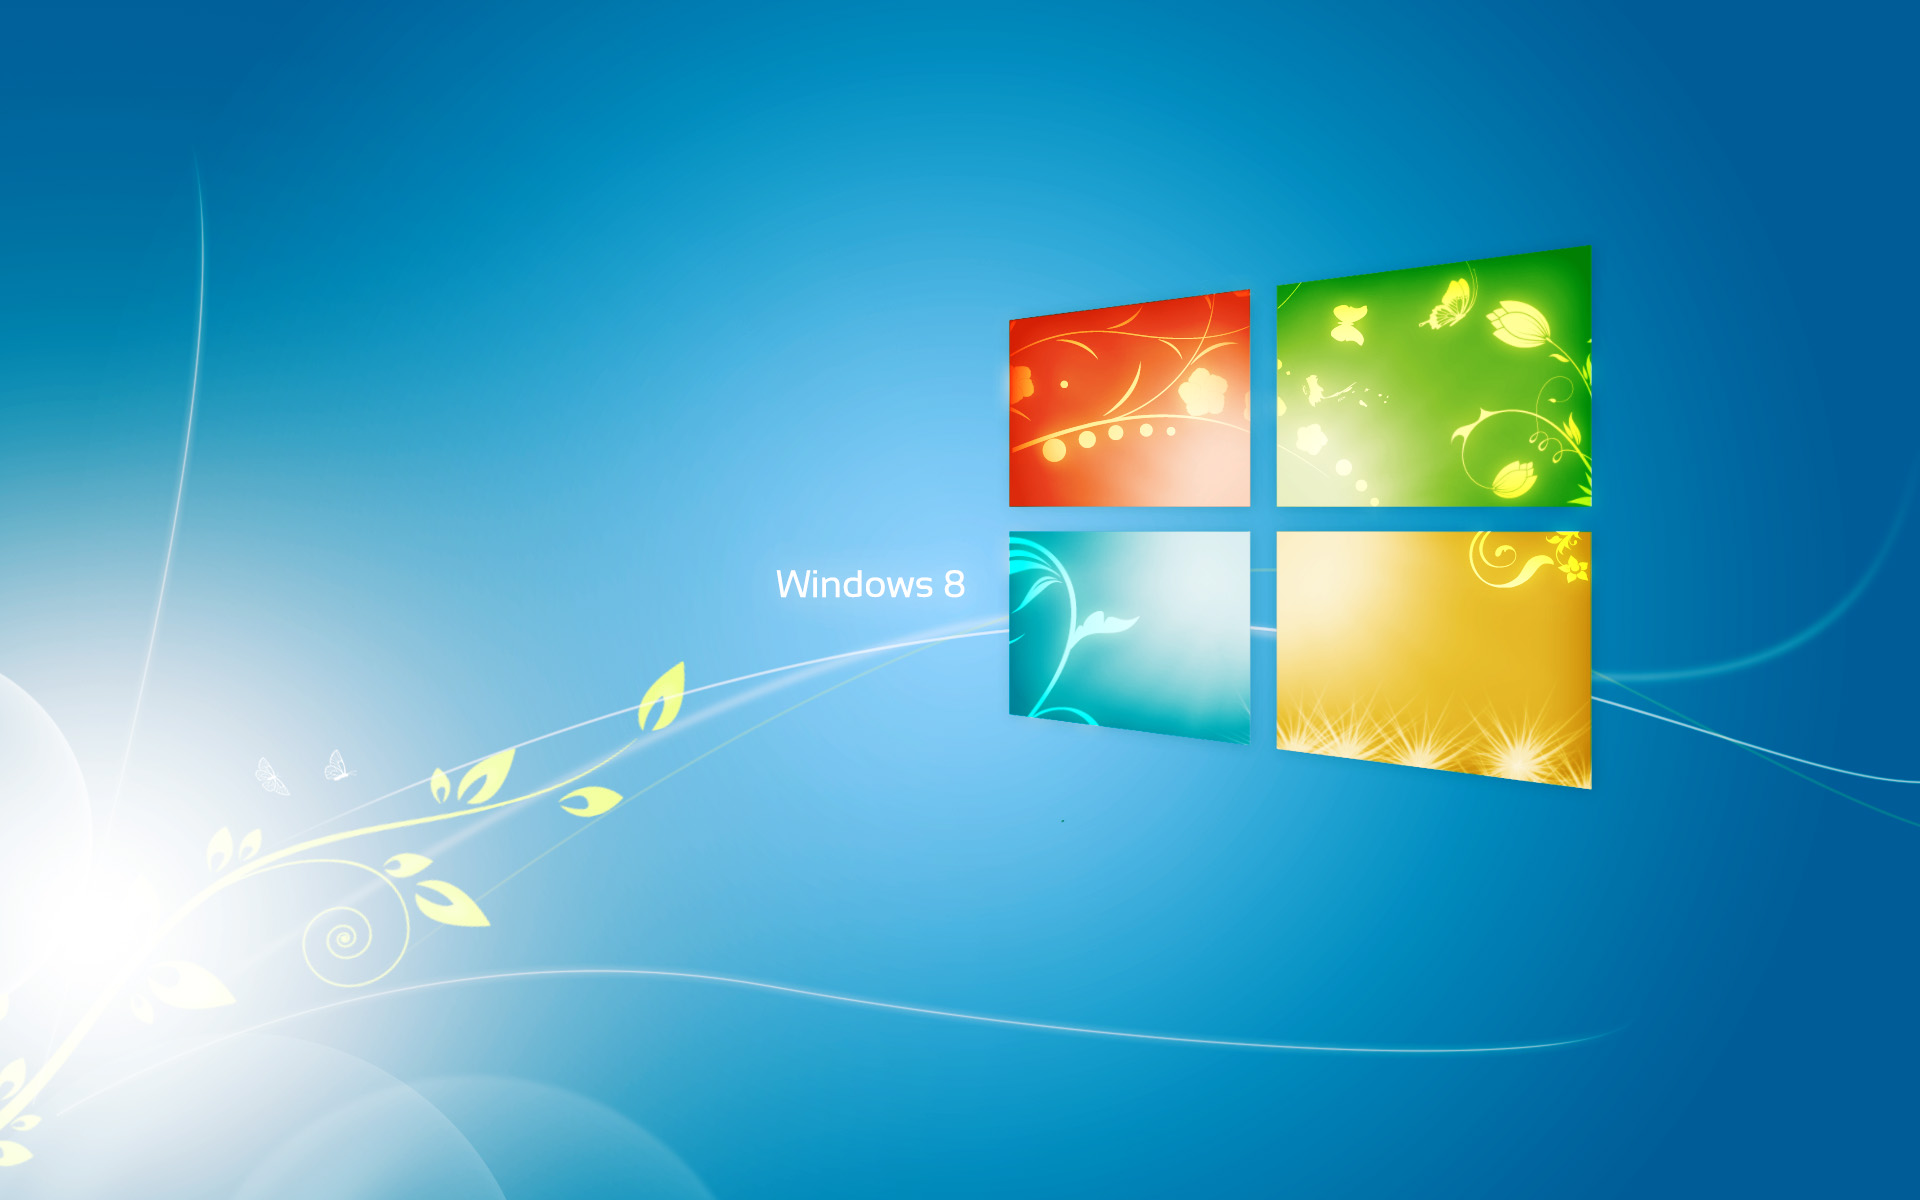 Read How to Change Windows 8 Start Screen Background using Windows 8 1920x1200